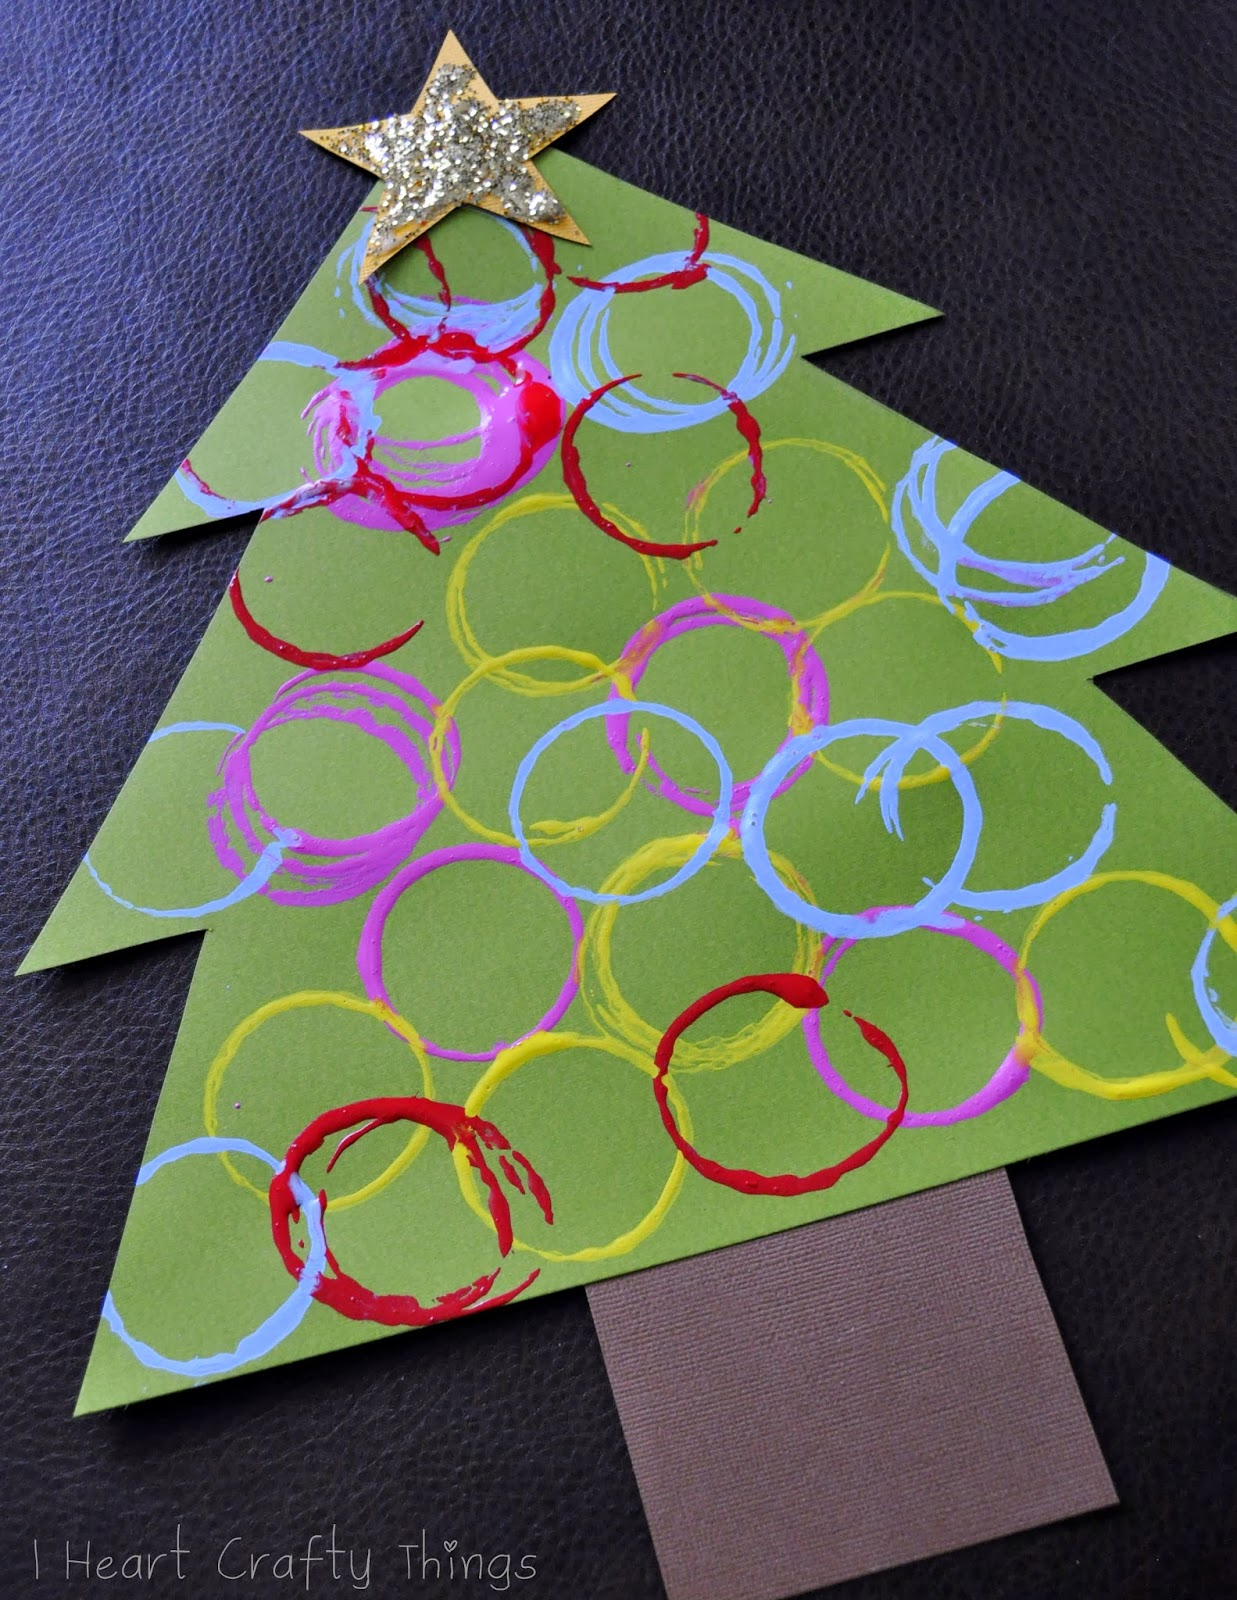 Kids Crafts For Christmas Ornament Stamped Christmas Tree Craft I Heart Crafty Things